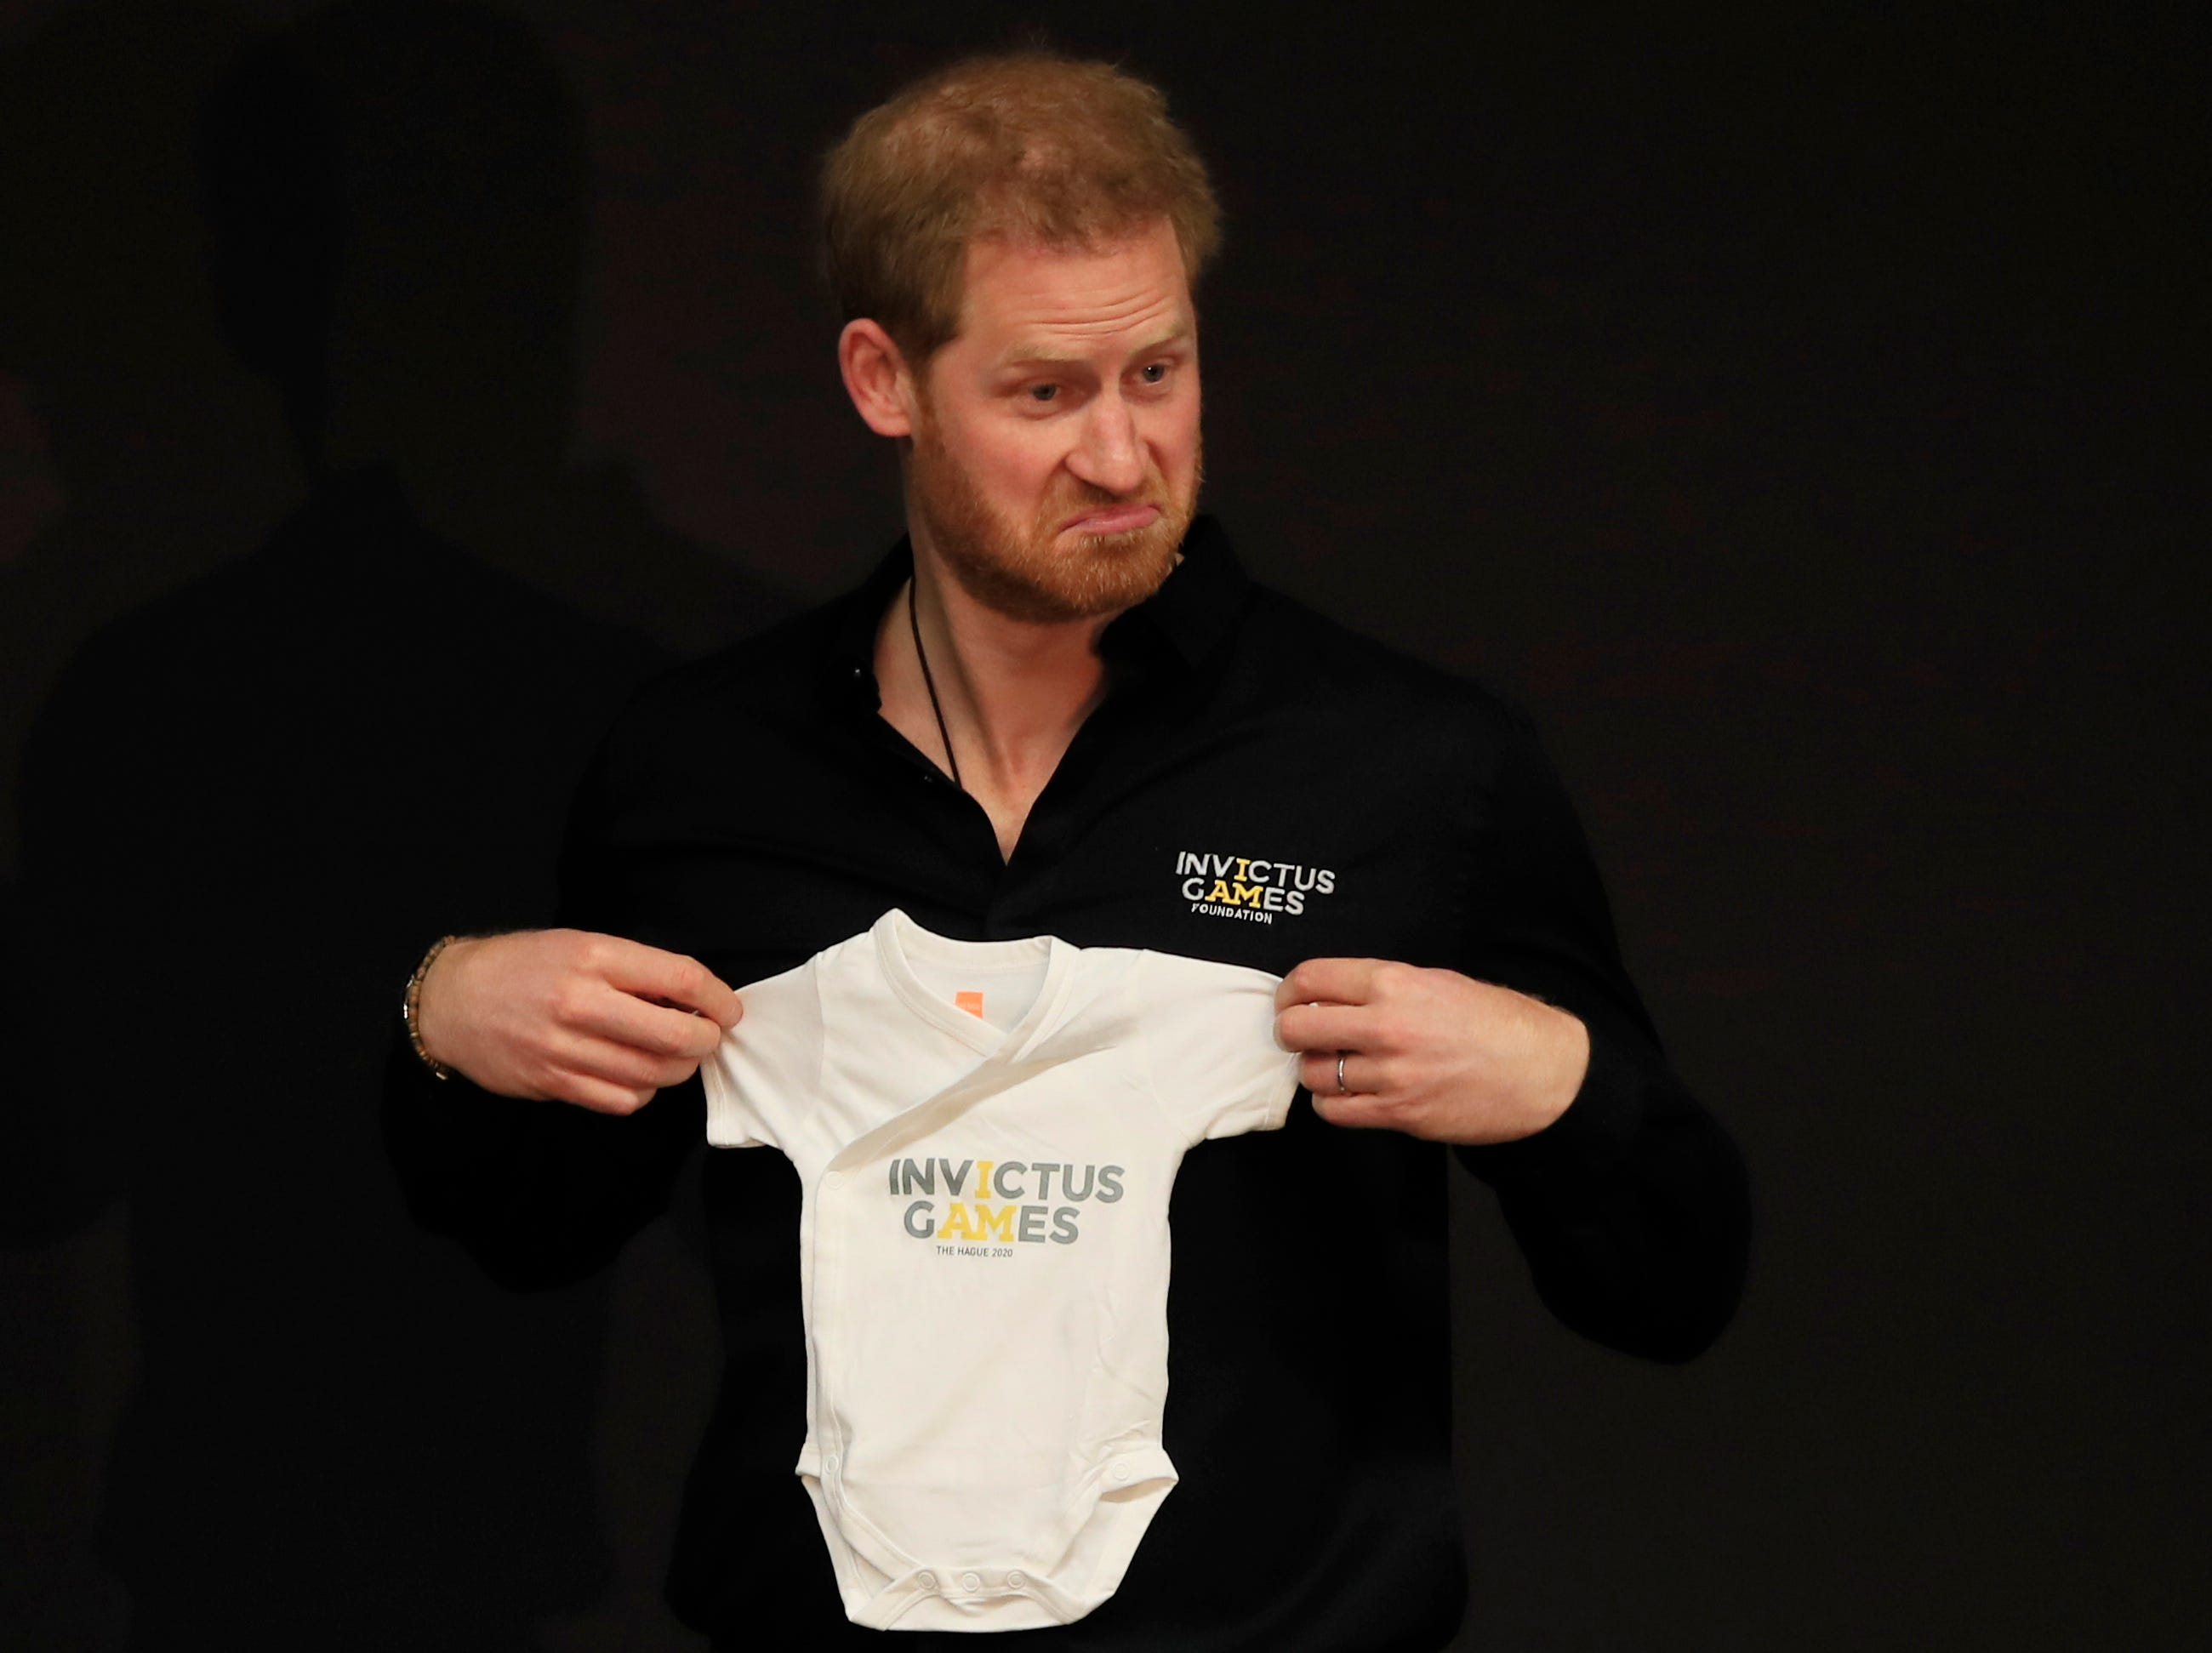 Britain's Prince Harry holds up an outfit for his newborn son, presented by Princess Margriet of the Netherlands, at the launch of the 2020 Invictus Games, in The Hague, Netherlands, Thursday, May 9, 2019. Prince Harry returned to his royal duties Thursday after the birth of his son Archie Harrison, to launch the countdown for the fifth Invictus Games sports competition for injured service personnel and veterans.